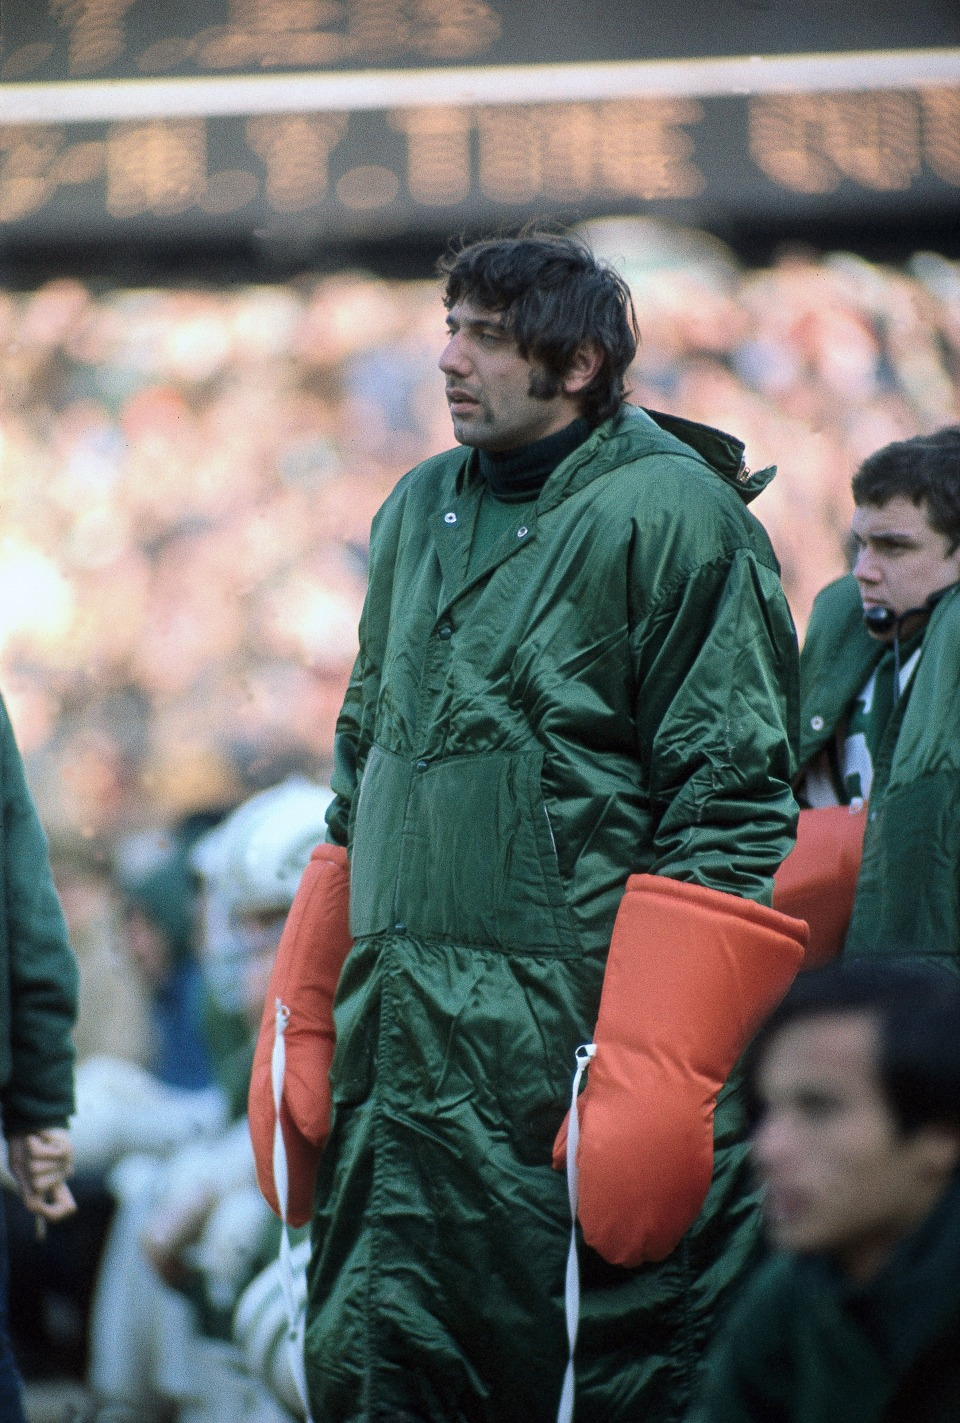 Joe Namath in Orange Gloves on Sideline vs Kansas City Chiefs